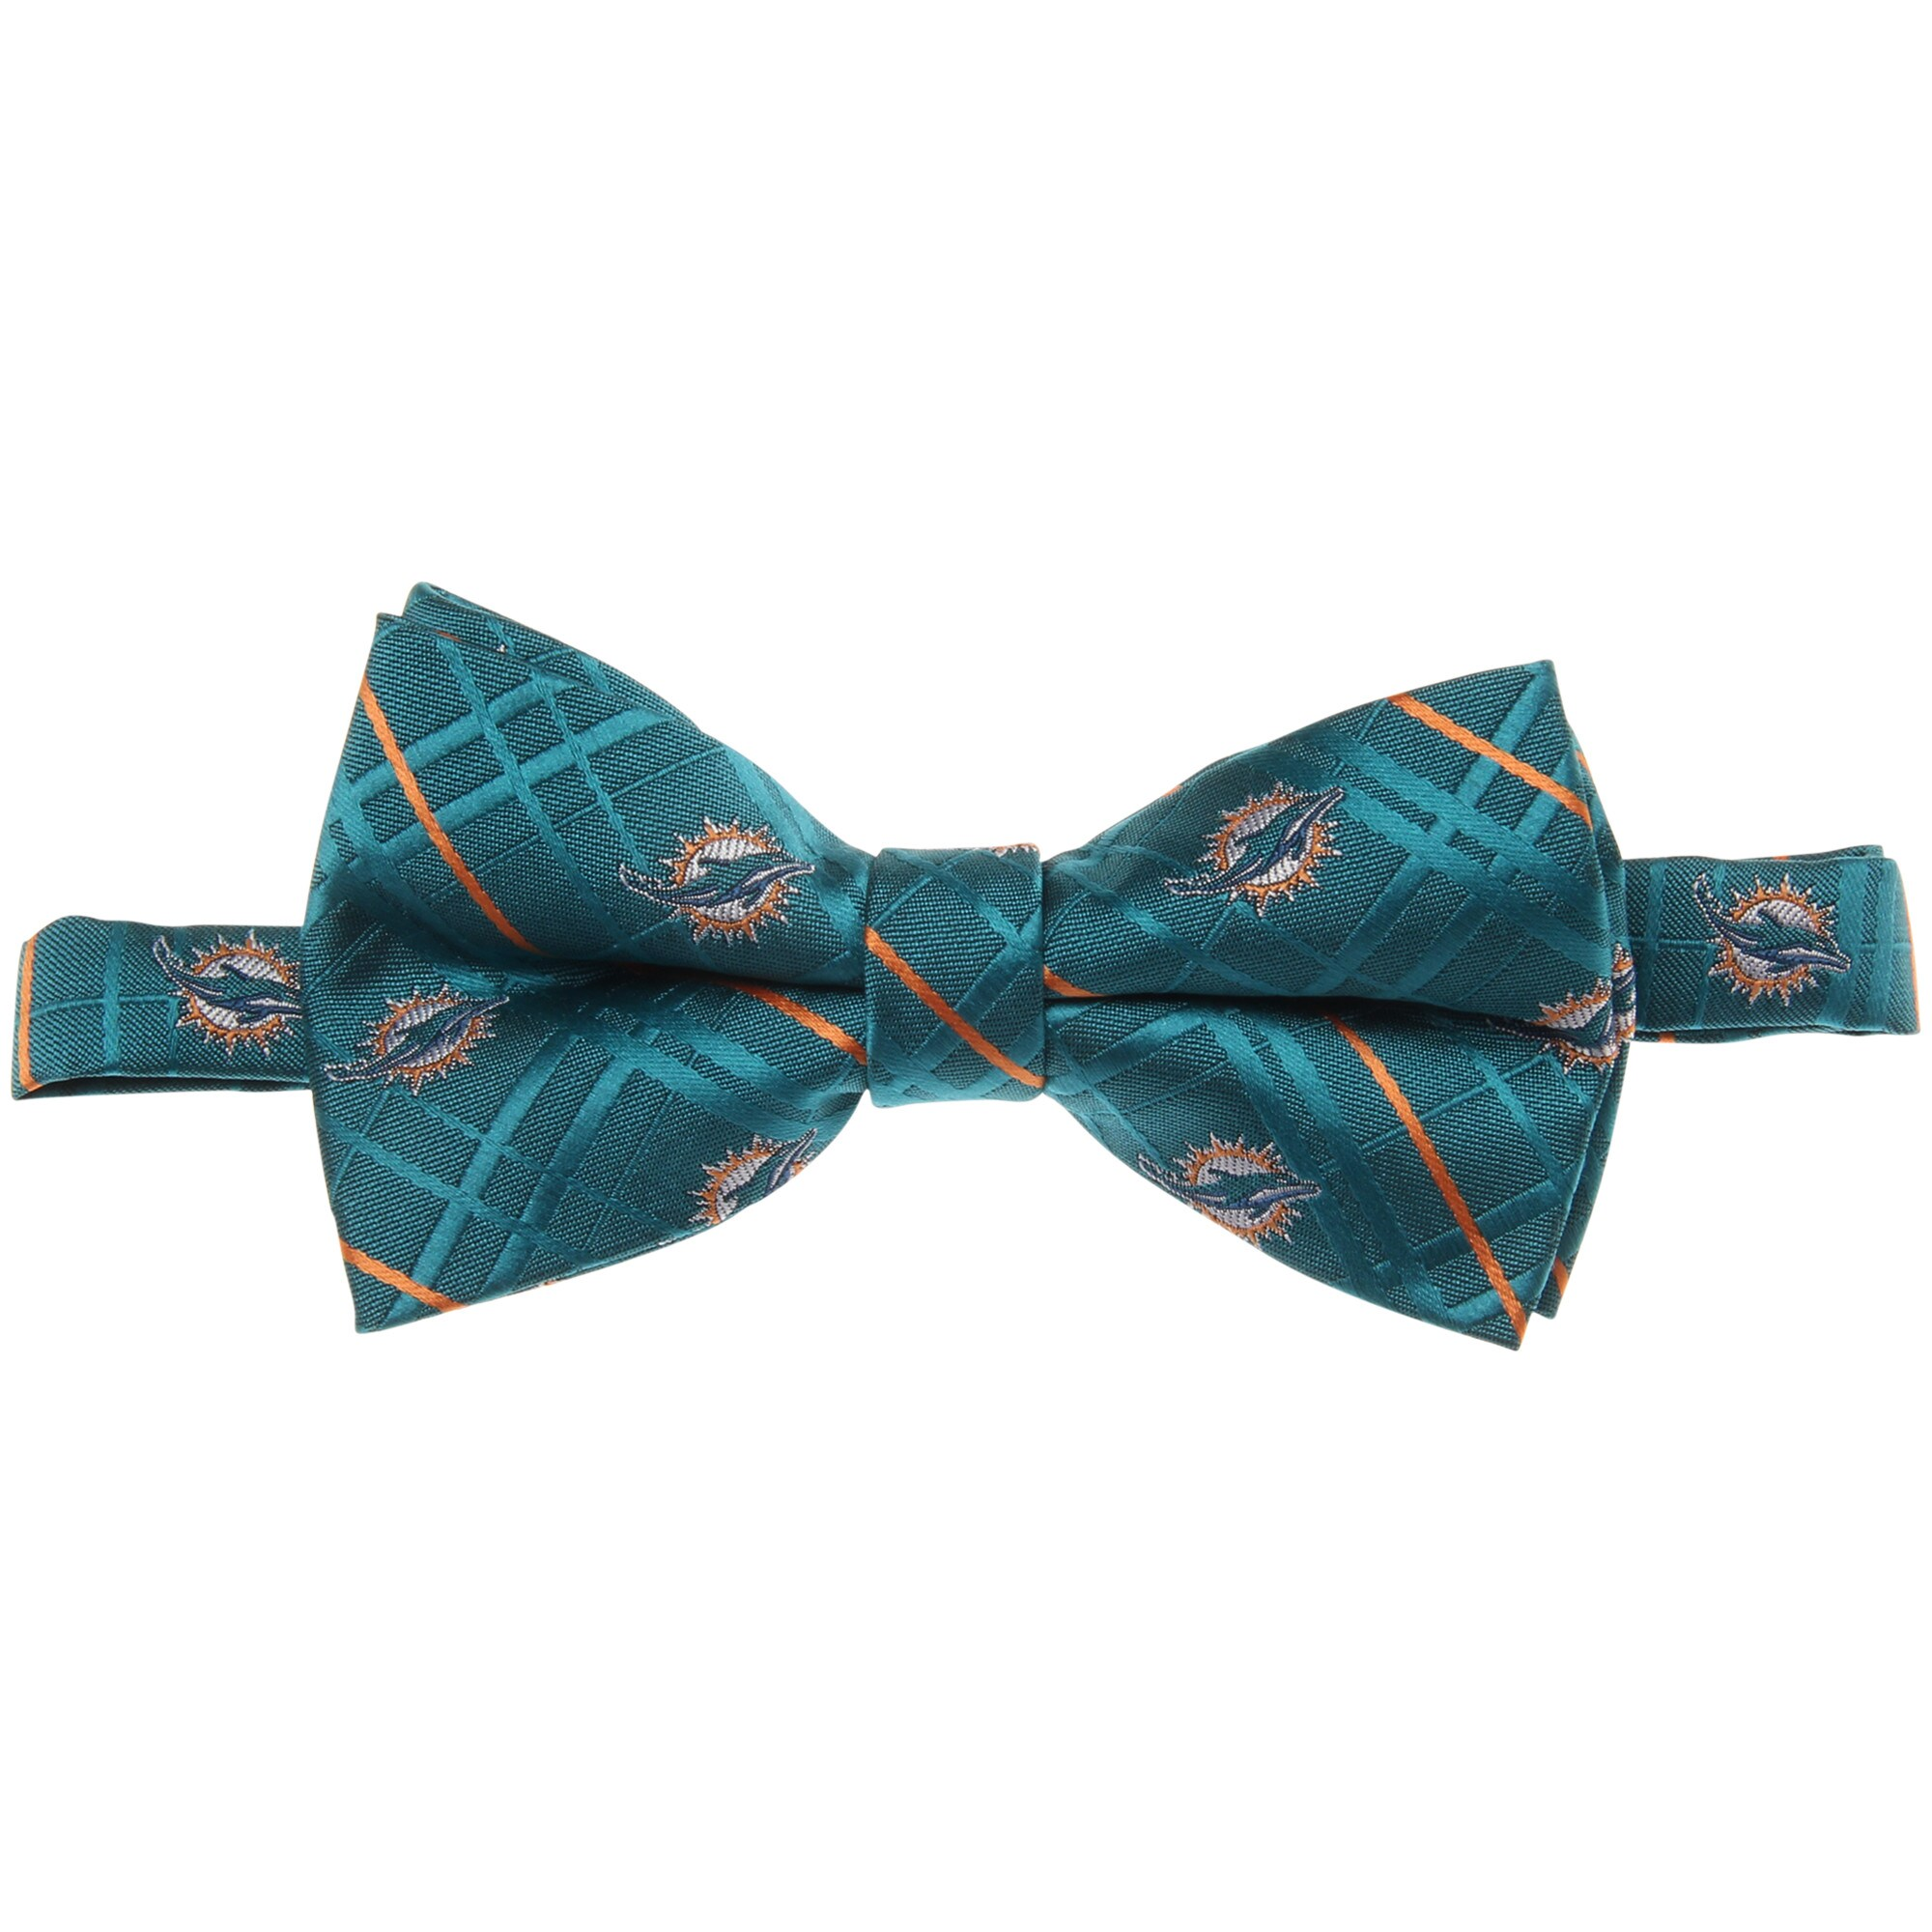 Miami Dolphins Oxford Bow Tie - Aqua